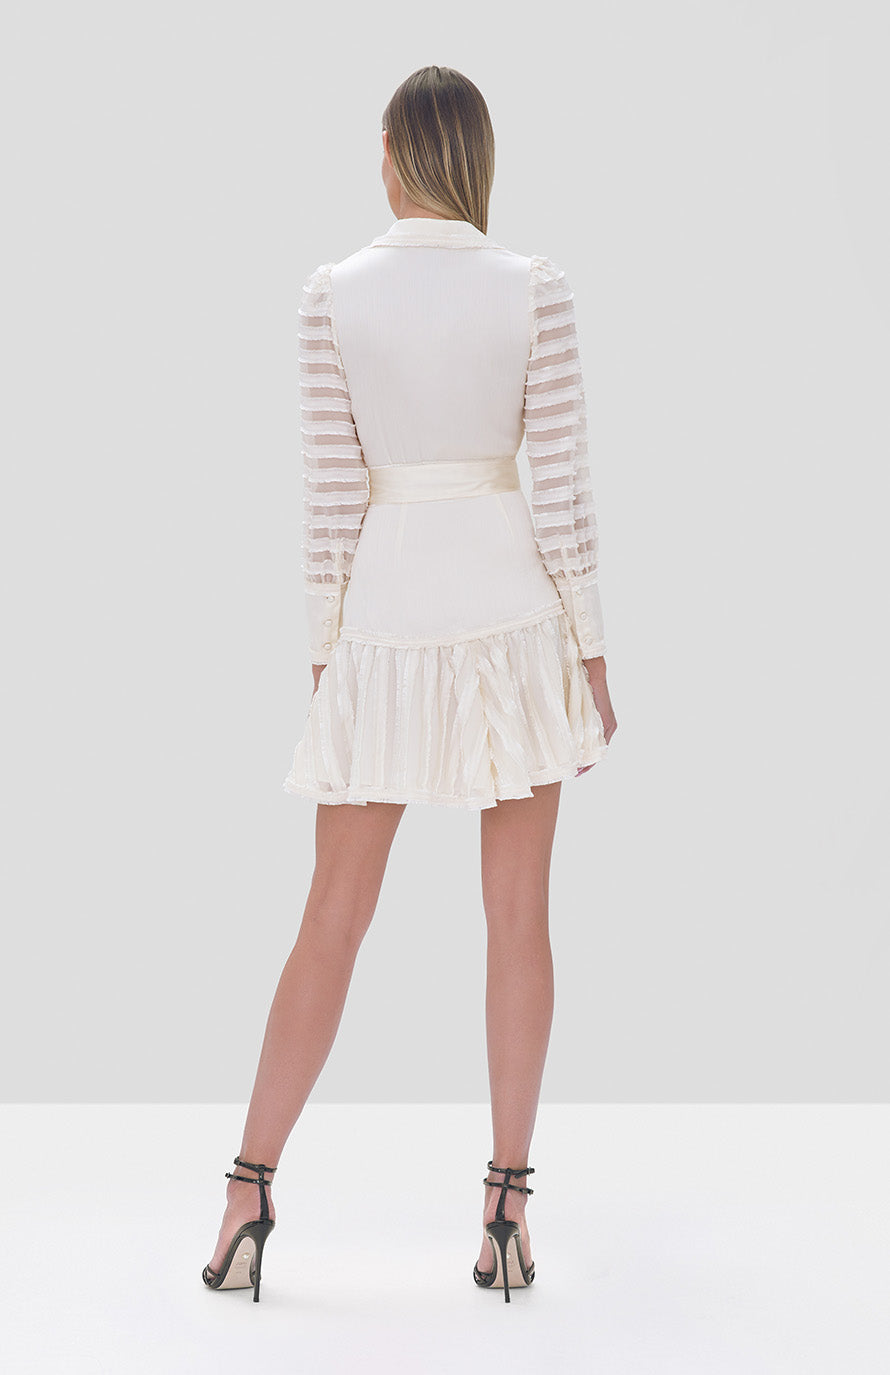 Alexis Renita Dress in Off White - Rear View